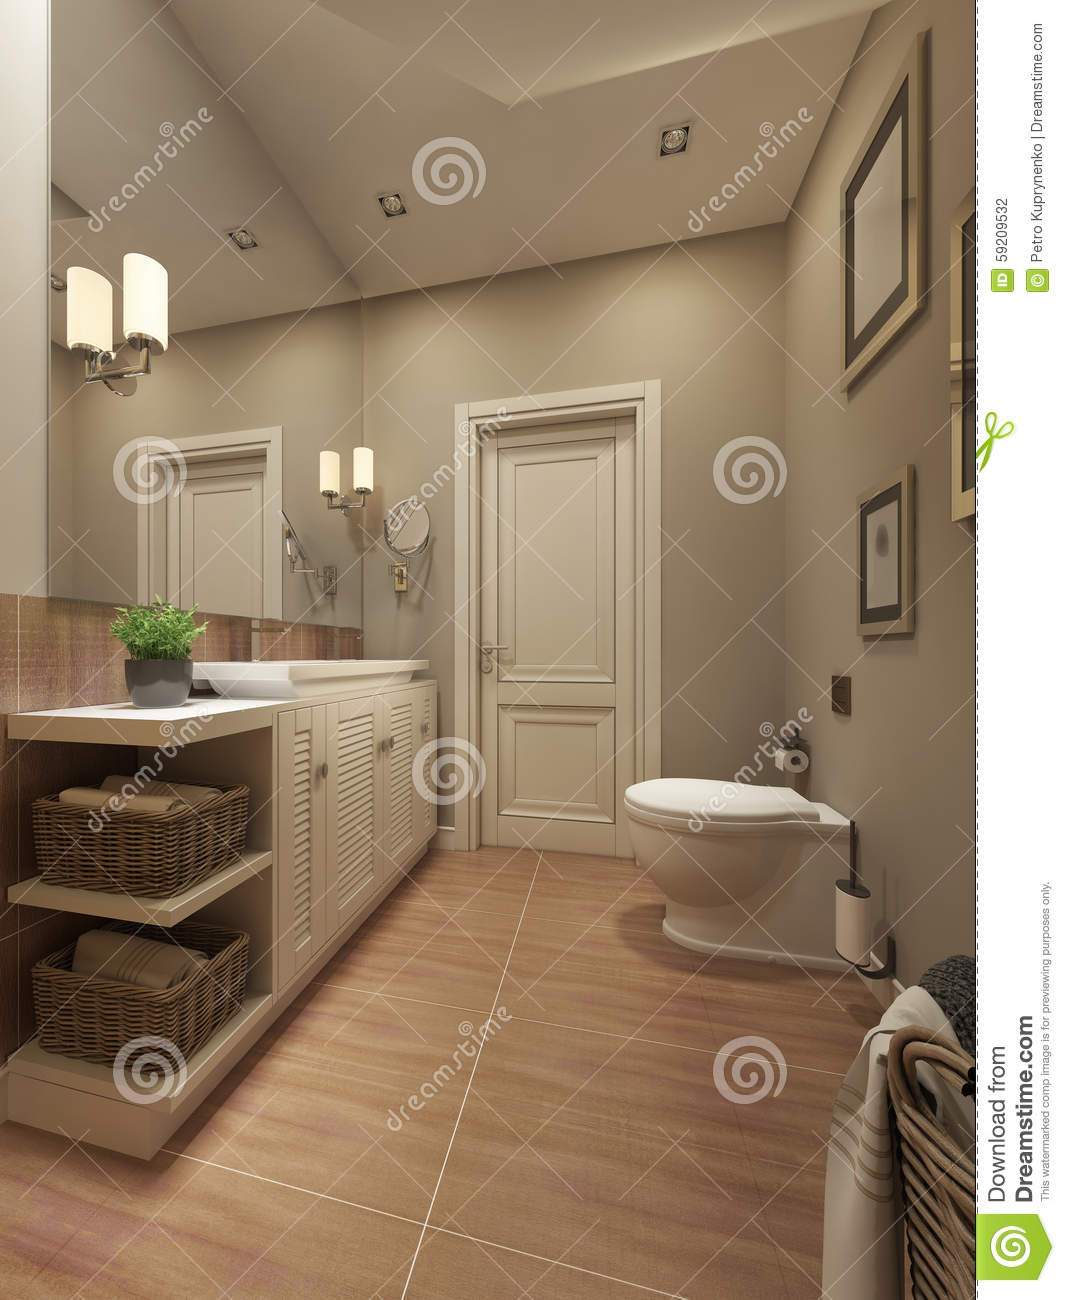 Bathroom Mediterranean Style: Bathroom Mediterranean Design Stock Photo